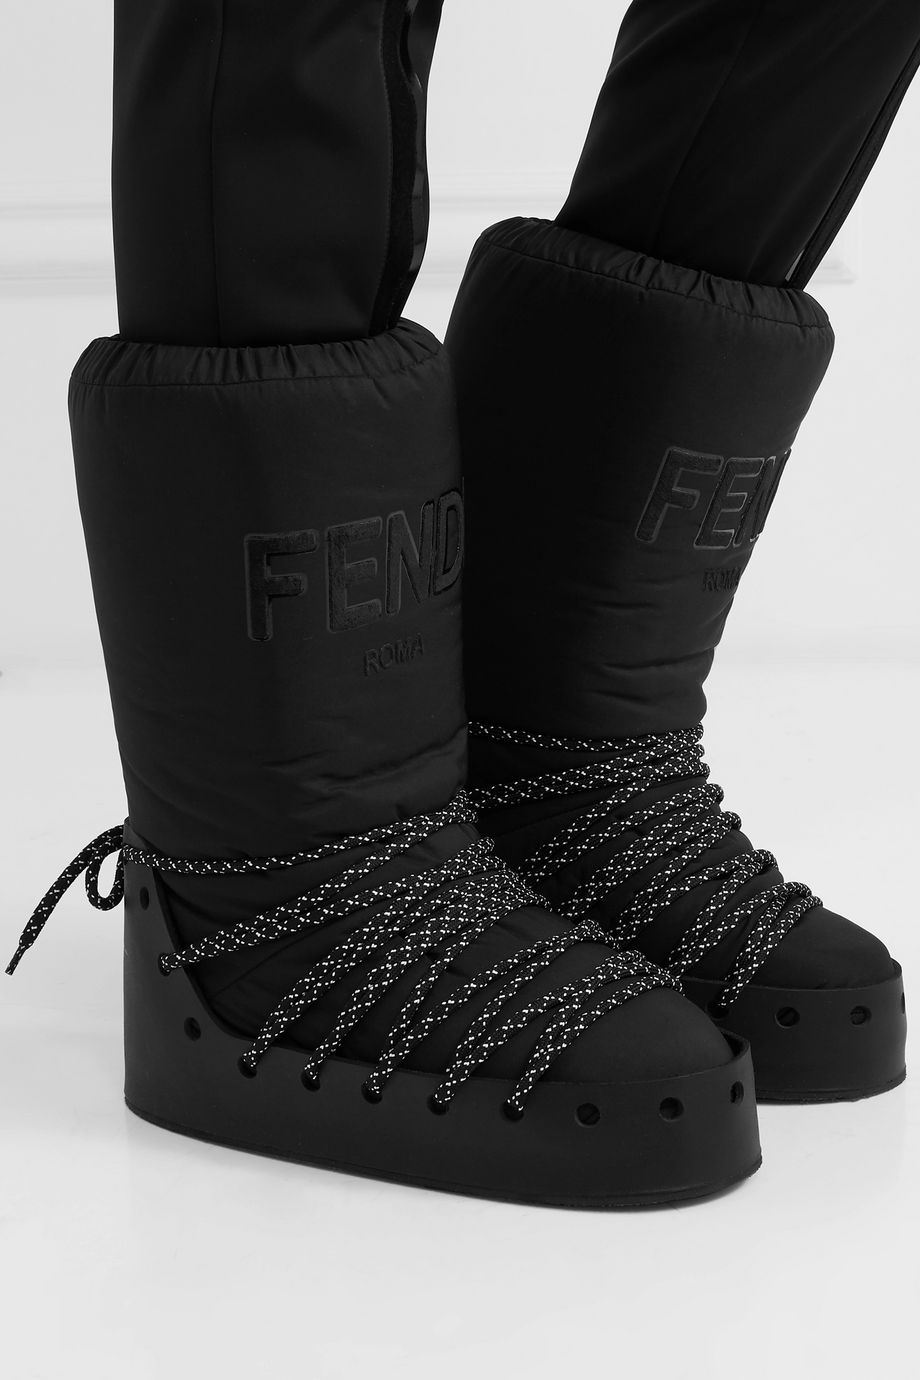 Fendi Logo-appliquéd jersey, leather and rubber snow boots